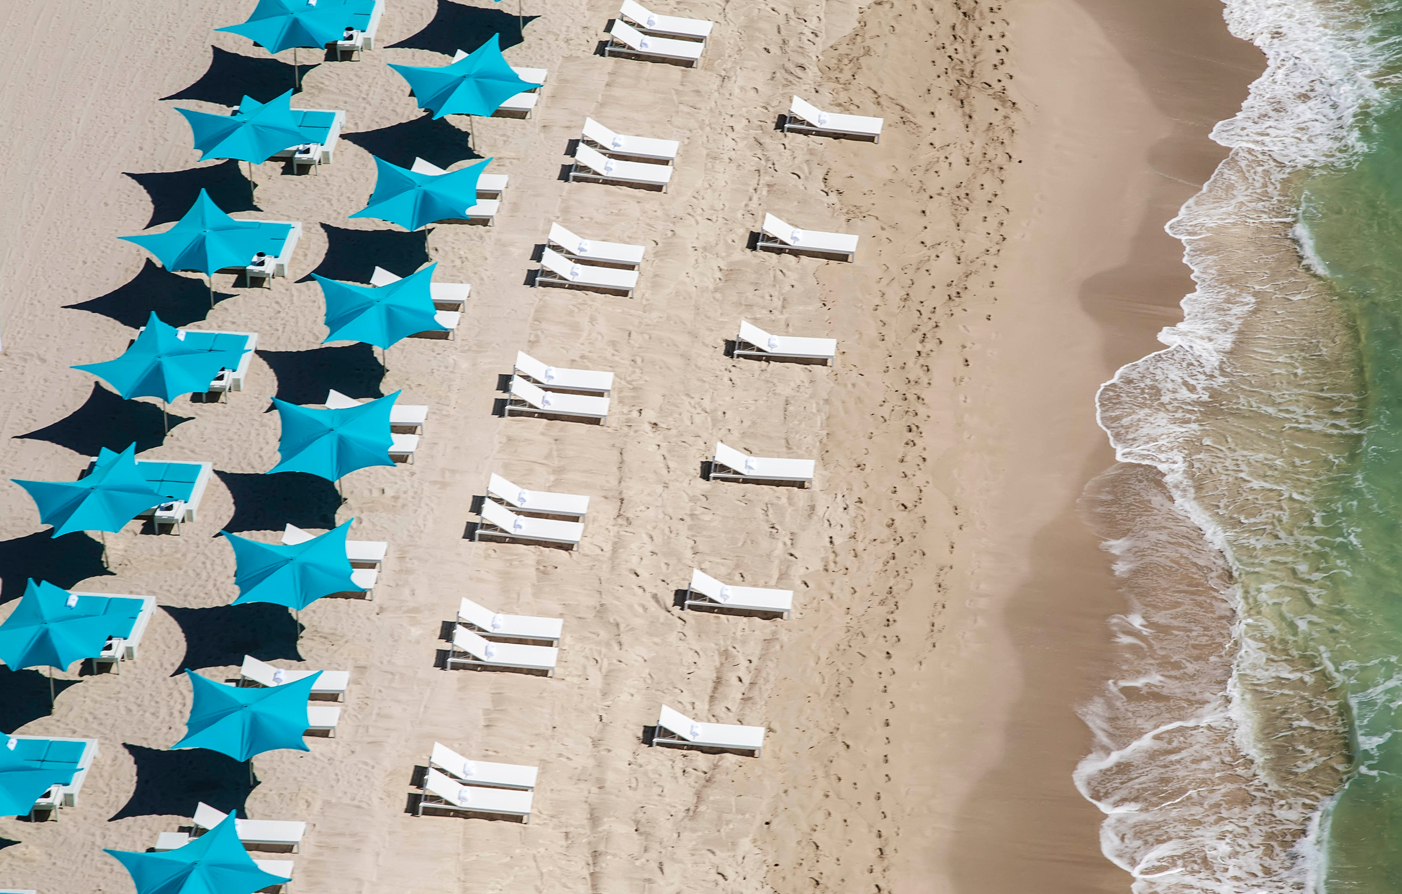 Trump International Hotel Beach Beds & Umbrellas